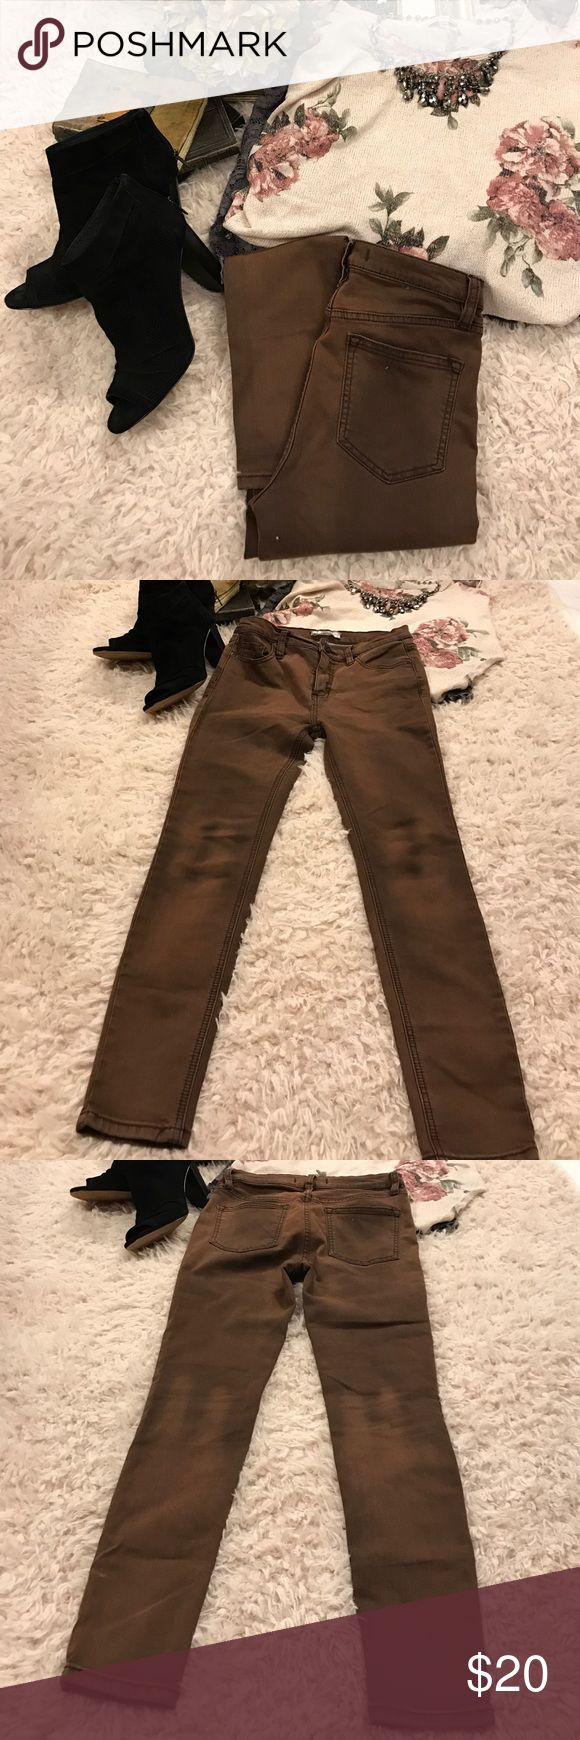 """Free People""  Distressed Brown Skinny Jeans❤️ Very flattering and comfortable jeans!  Love them and hate to part with them I just have too many.  Any other questions, just ask!😘 Free People Jeans Skinny"